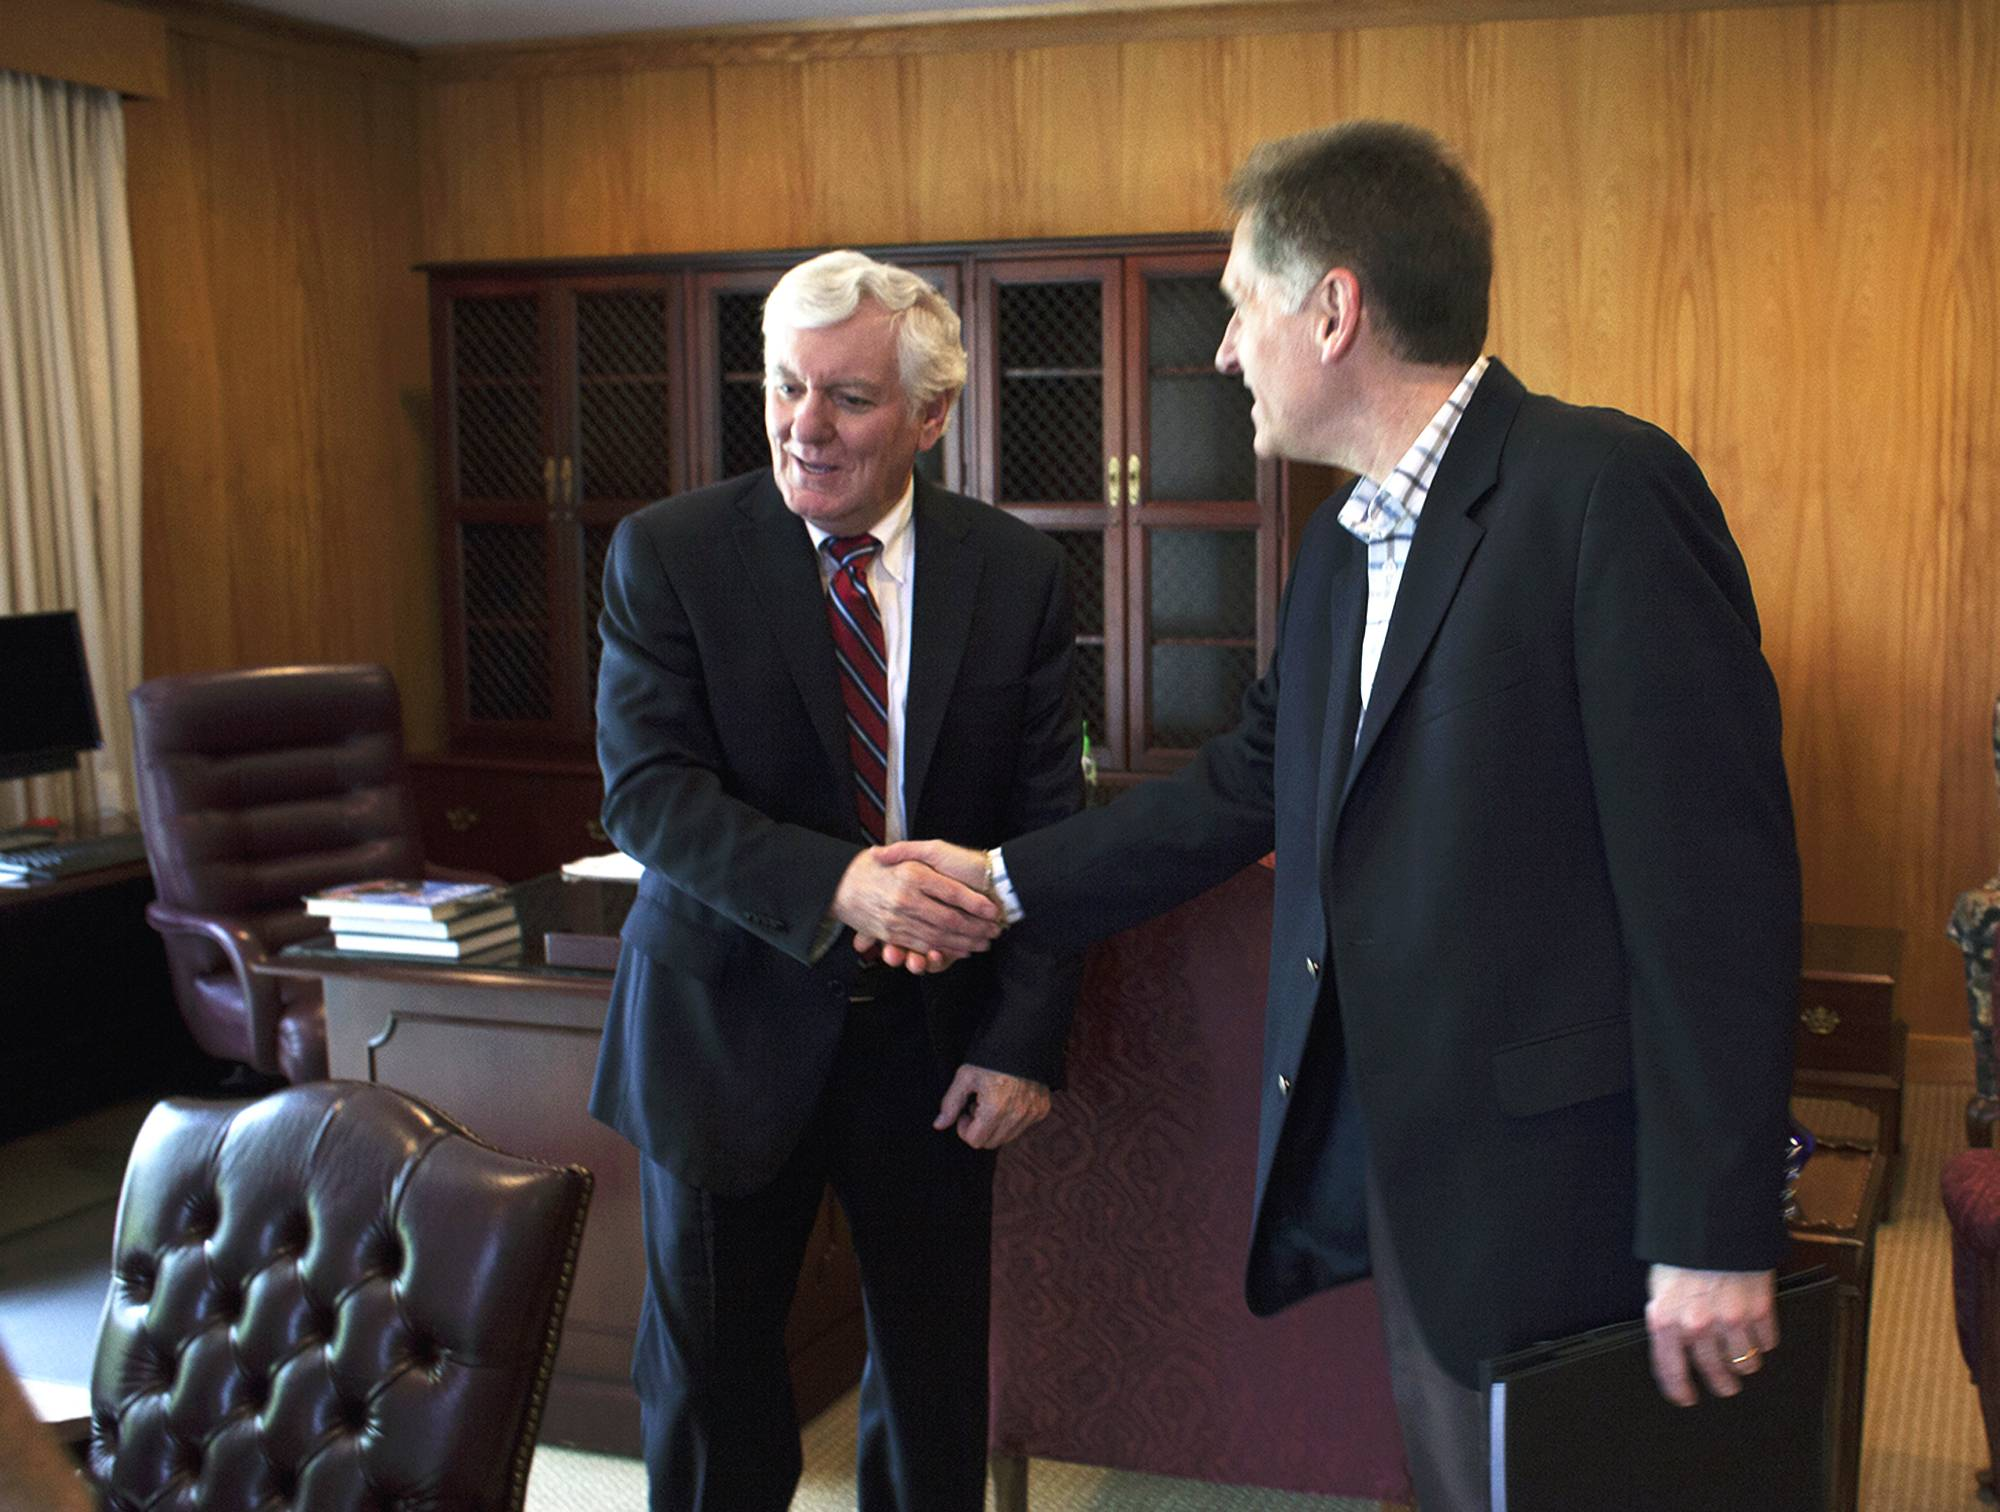 Glenn Poshard, left, shakes hands with incoming SIU president Randy Dunn on Wednesday in Carbondale. Poshard officially retired Wednesday but will stay on through June as a consultant to his successor.